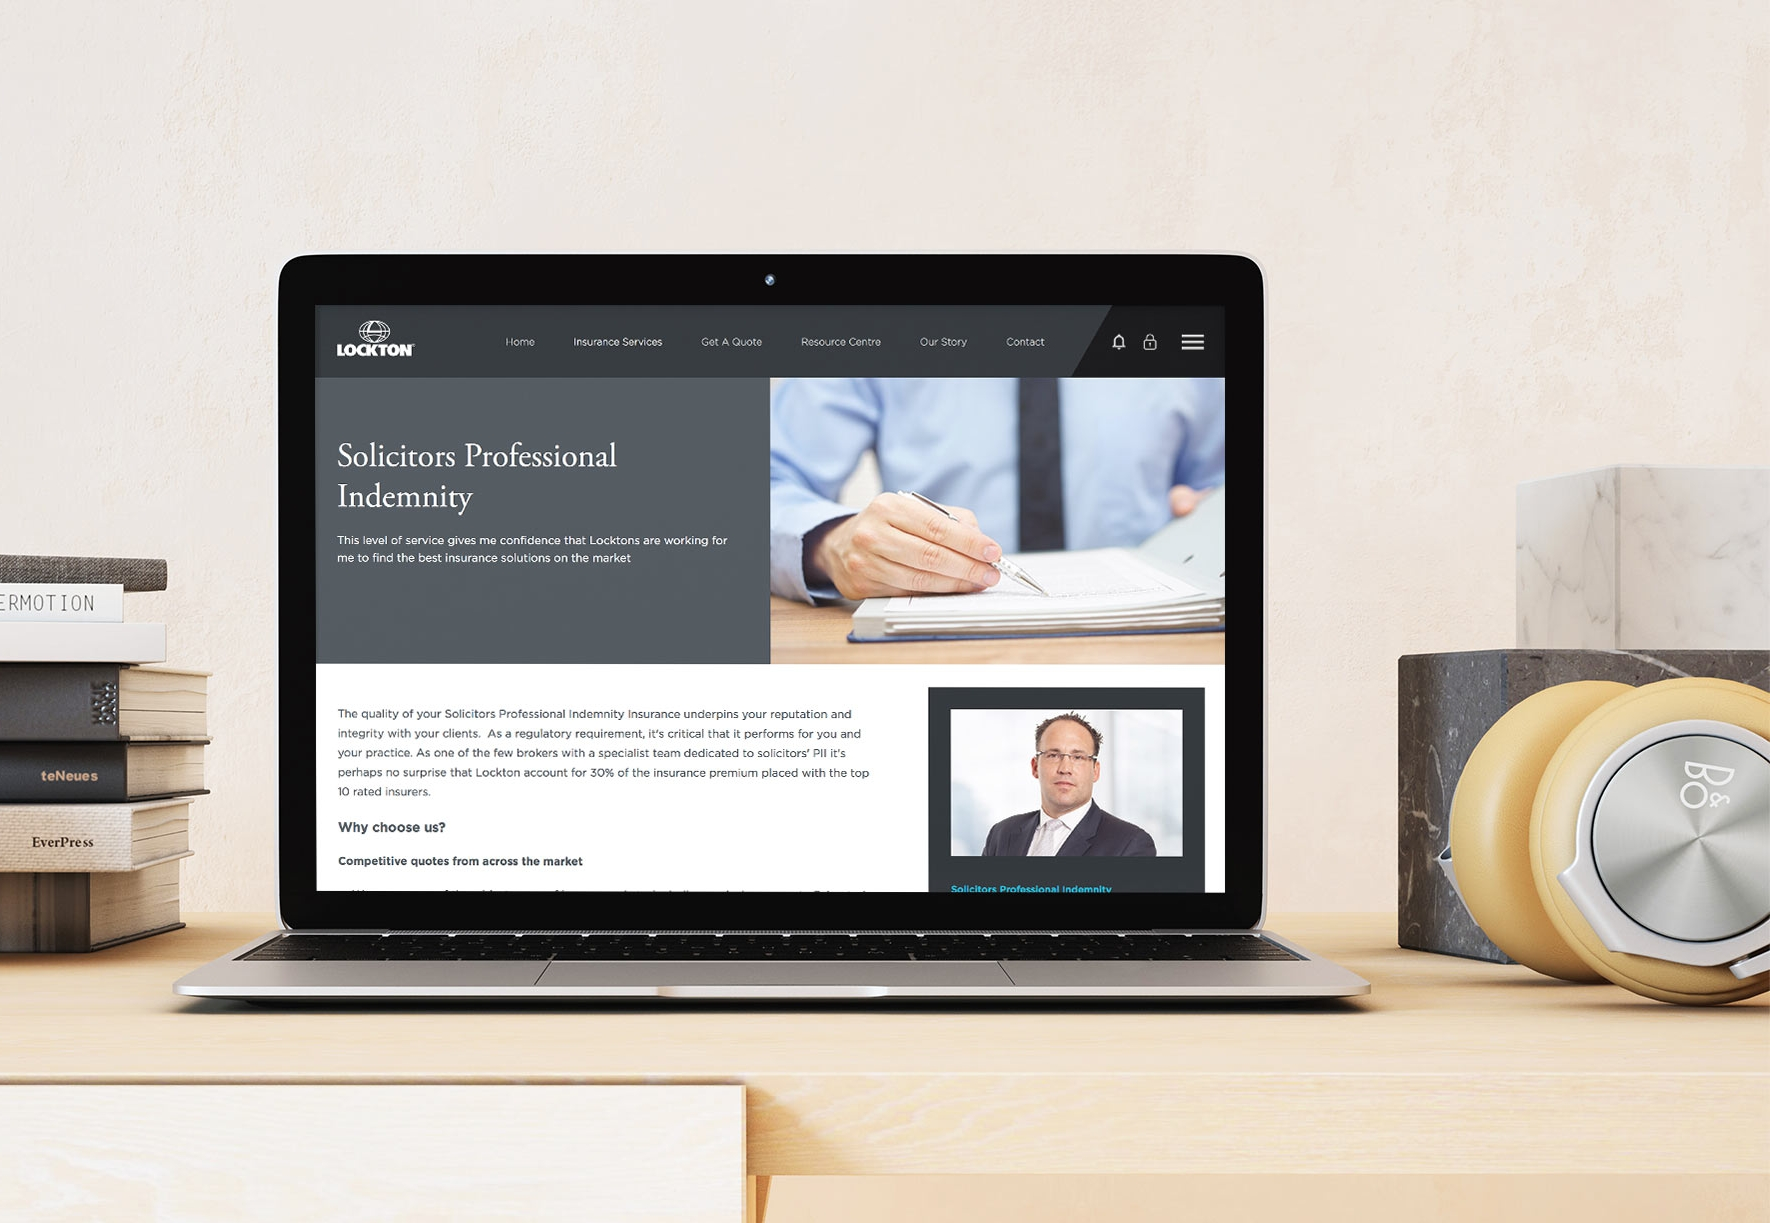 Lockton Solicitors - A new enterprise look and feel with unified templating and features across the front end, back office and client dashboards, ready to deploy across the entire suite of service sites.